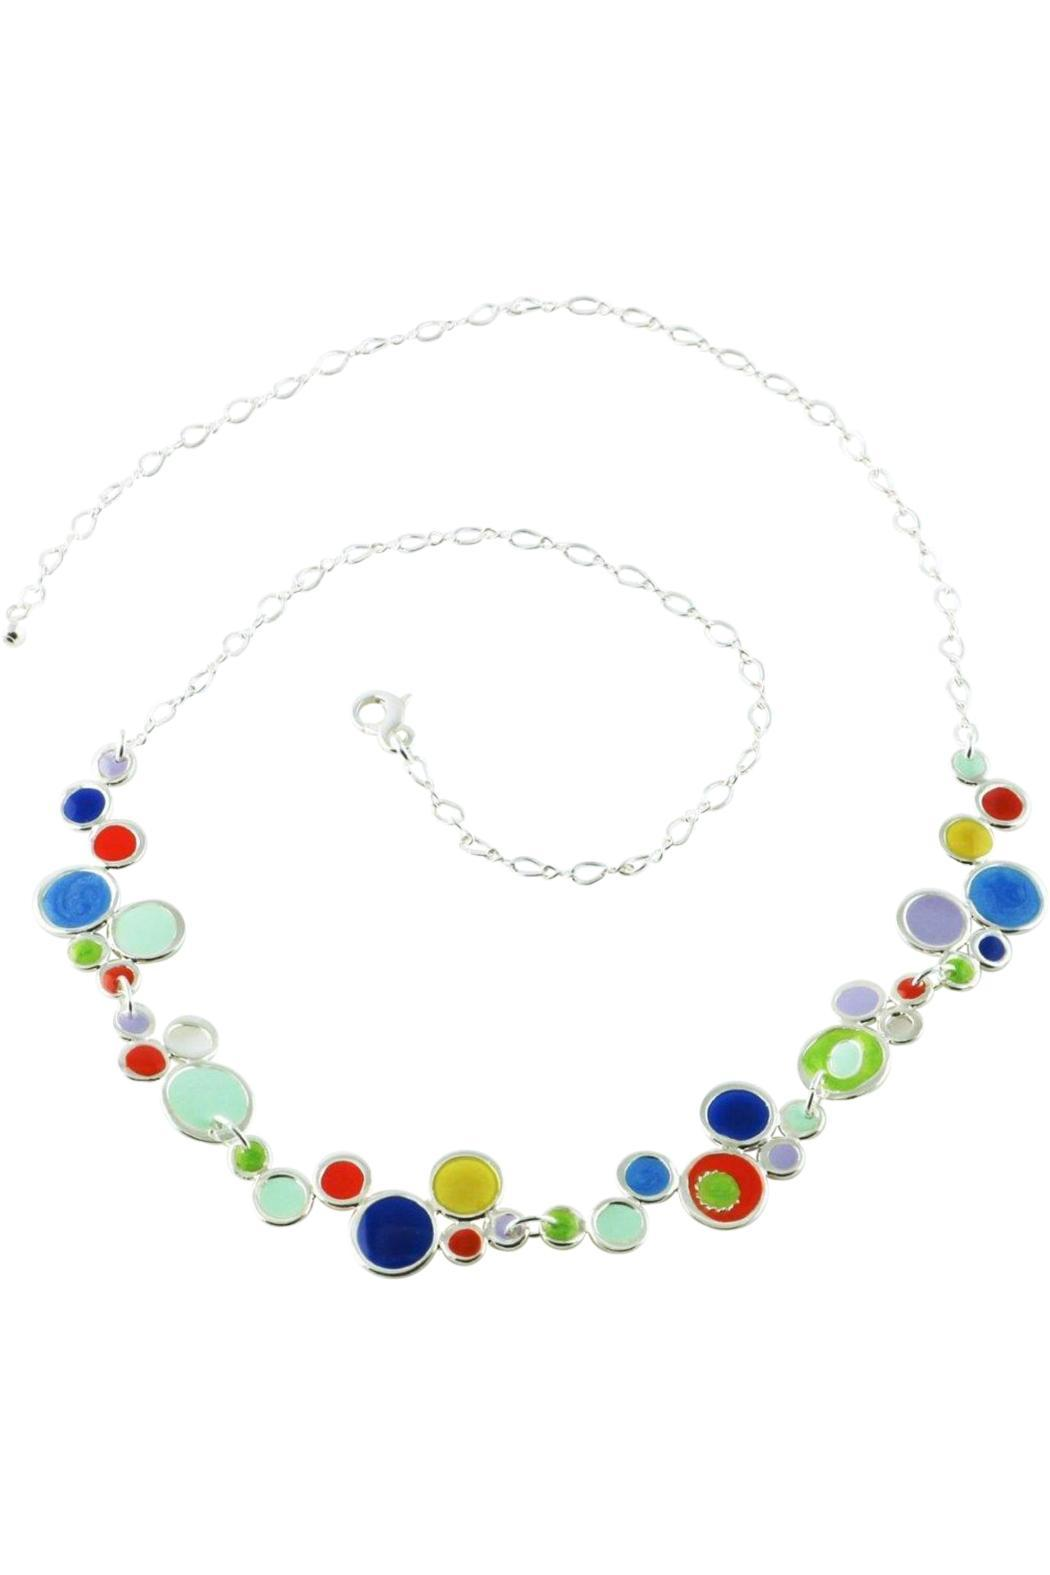 G Gallery & Glass Studio Bubble Link Necklace - Main Image